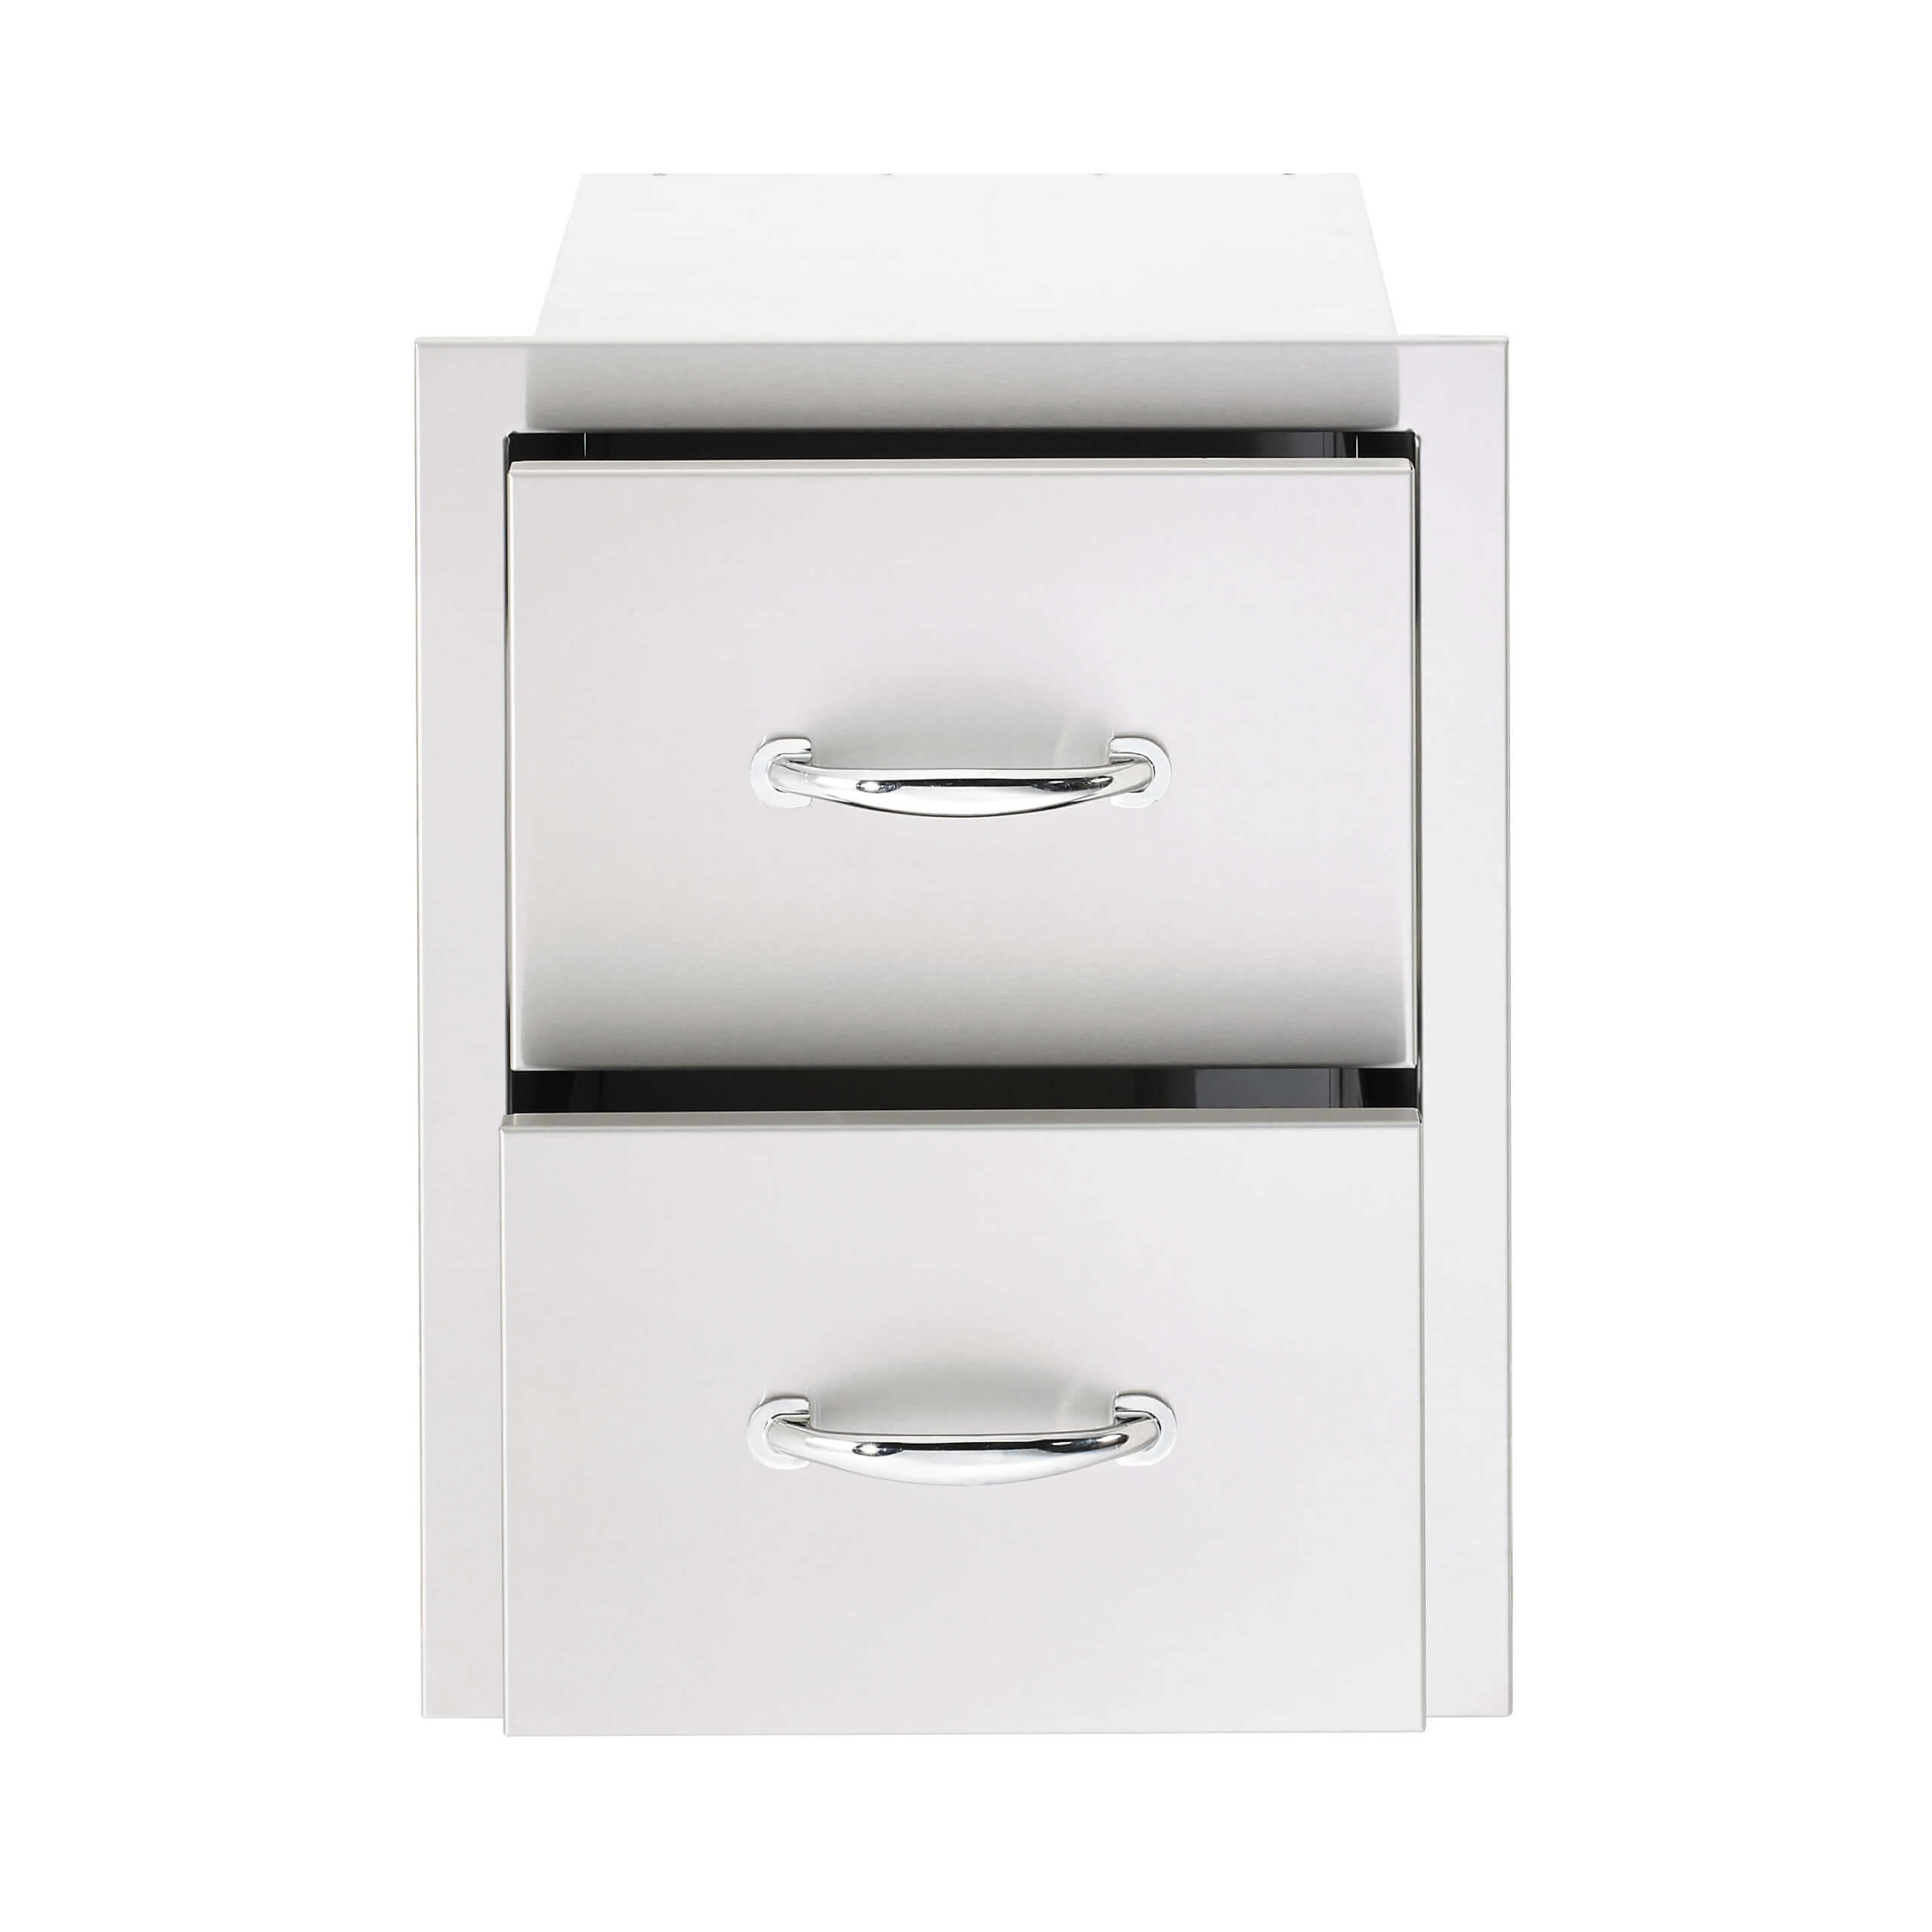 SSDR-double-drawer-masonry-outdoor-kitchen-accessories